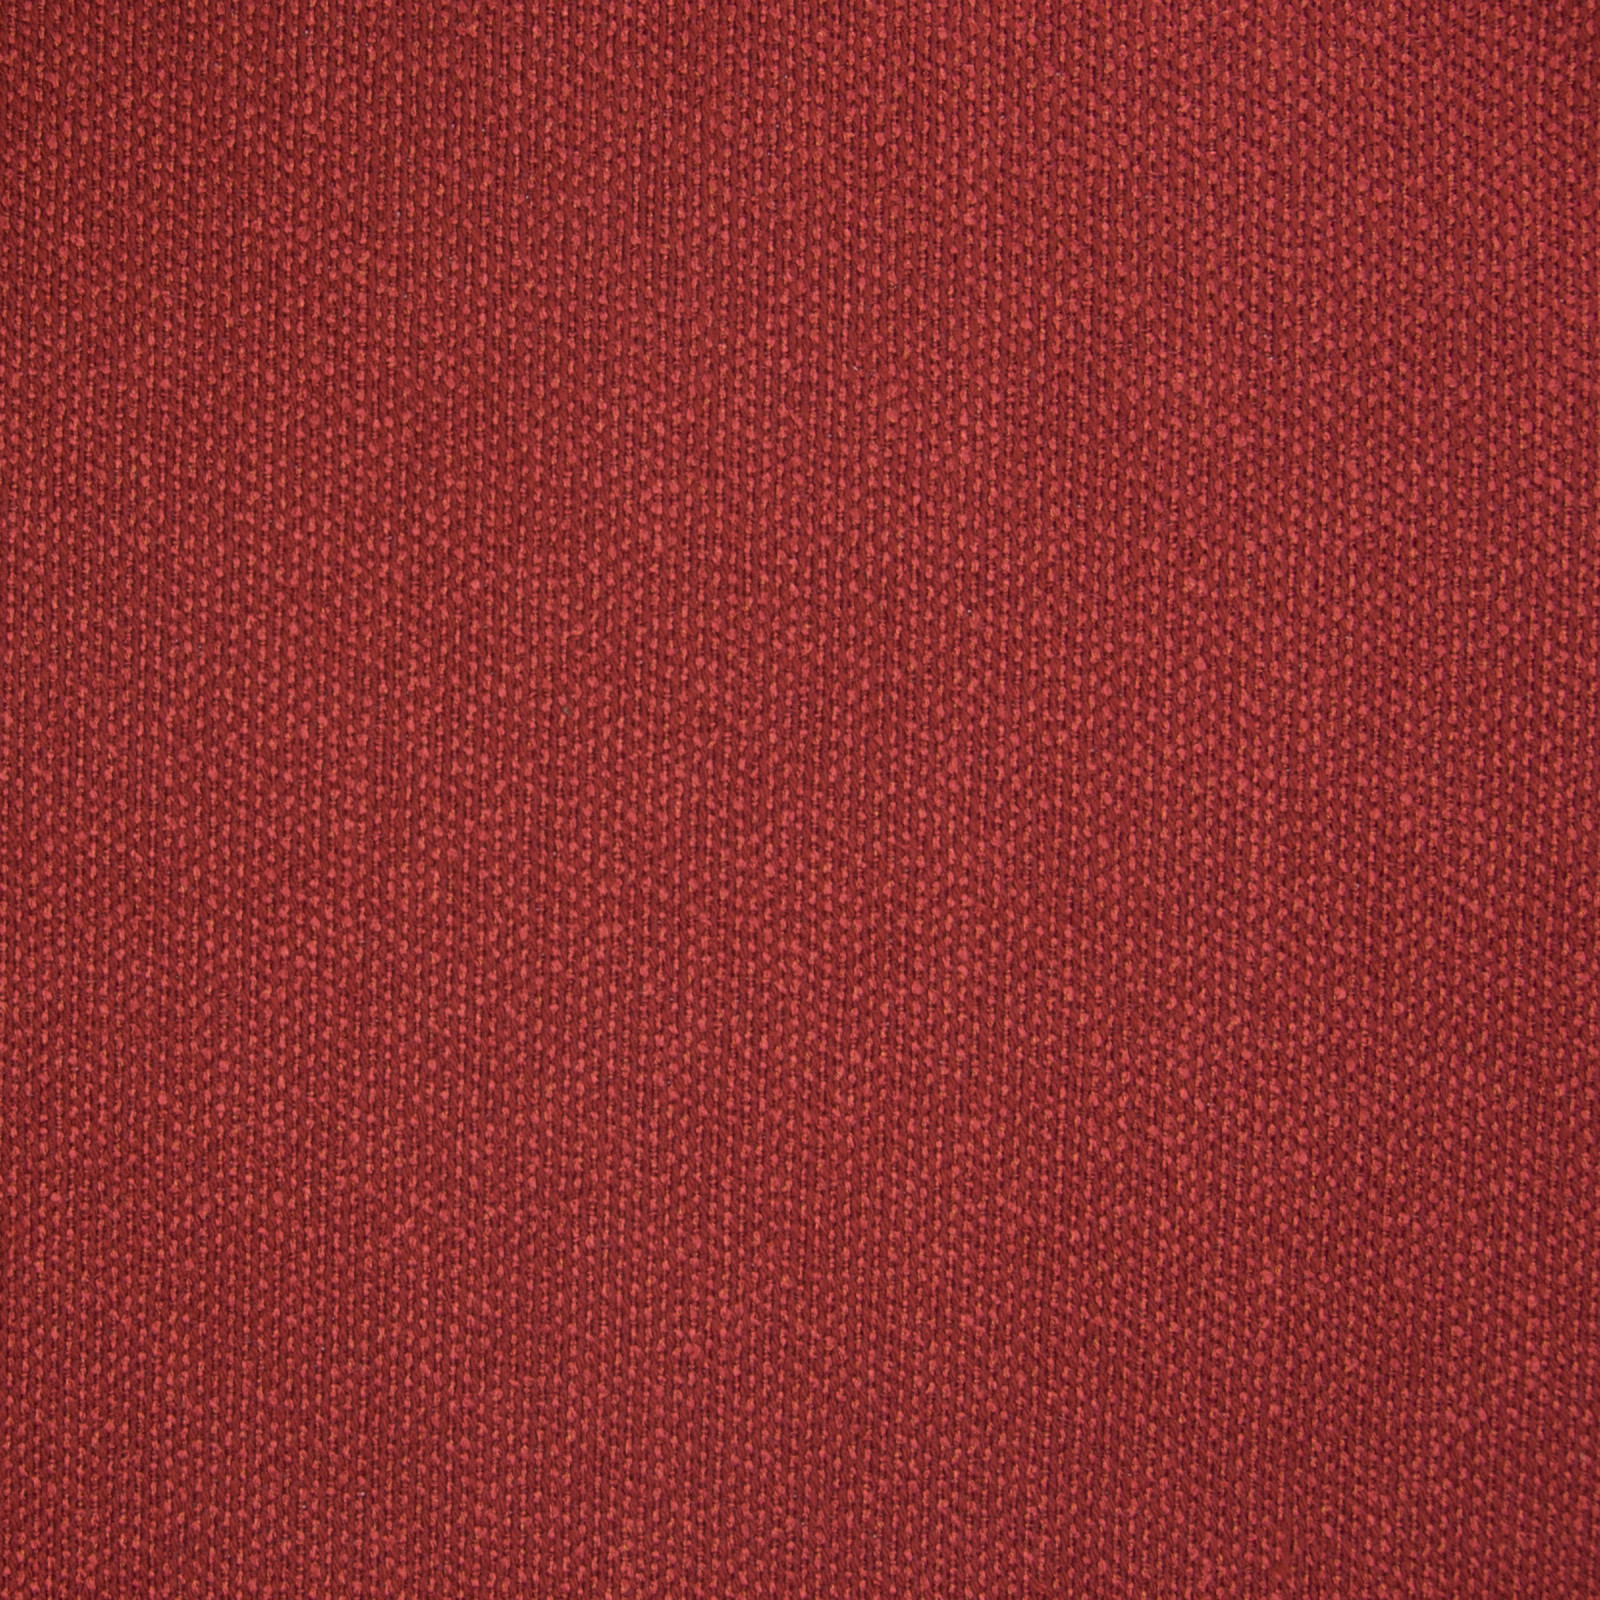 Scarlet Red Solid Woven Upholstery Fabric